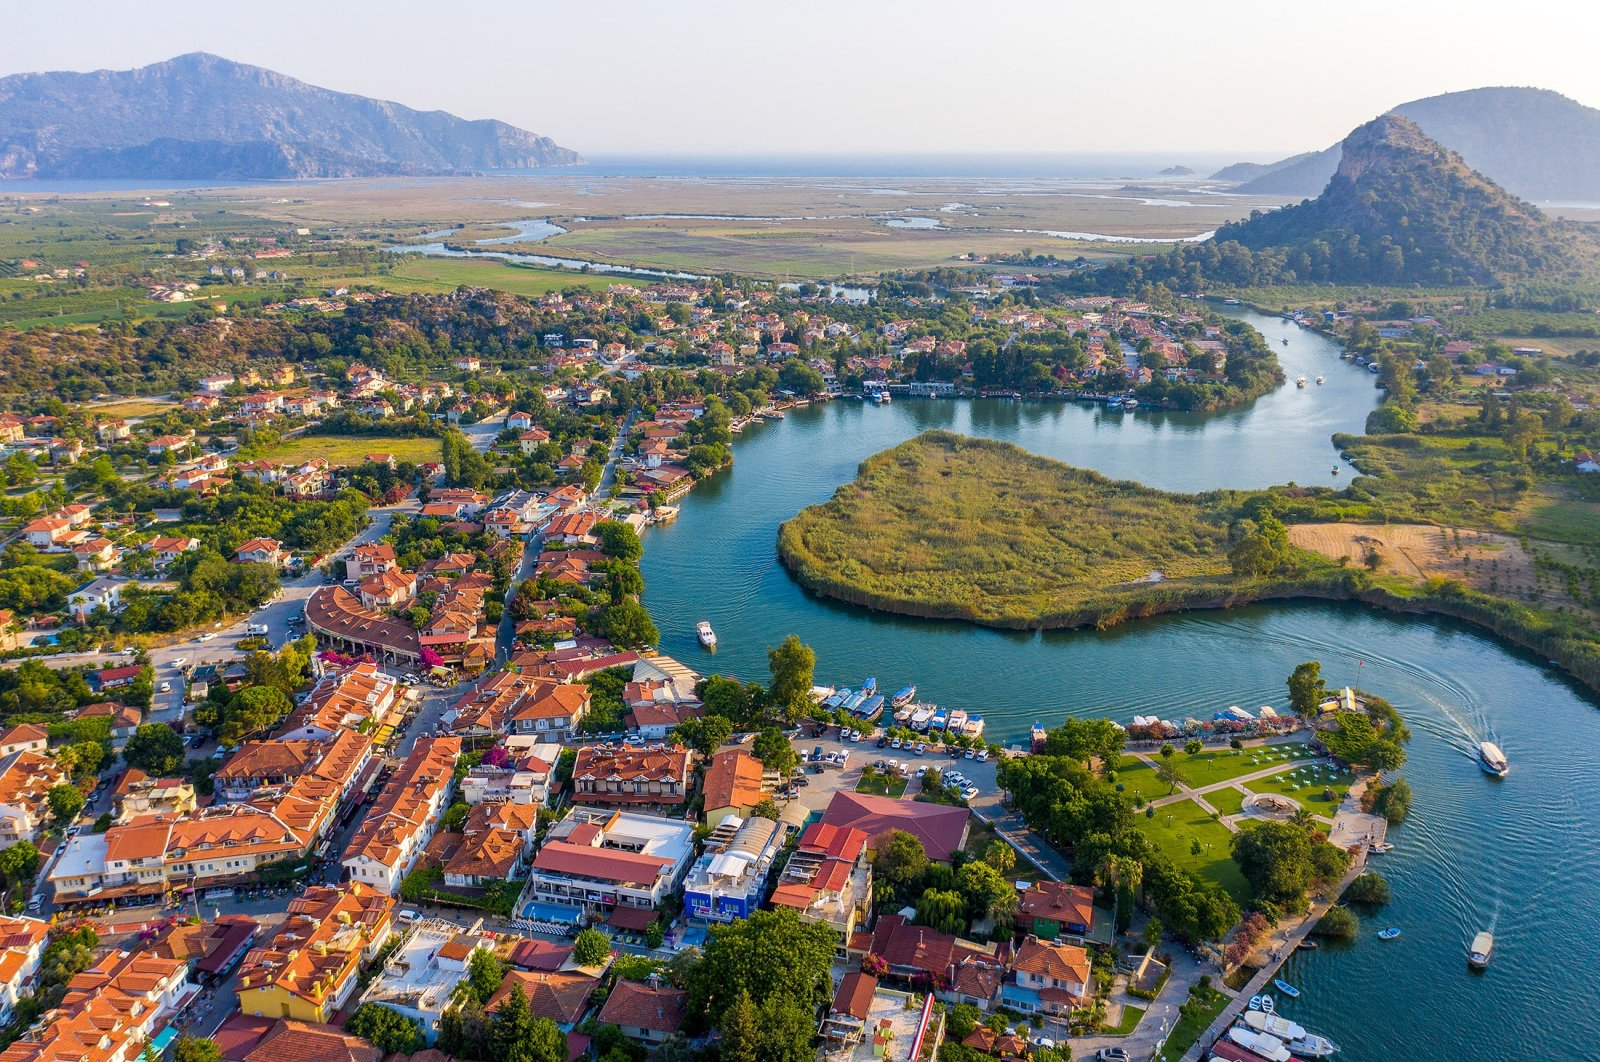 A drone view of Dalyan. (Shutterstock Photo)